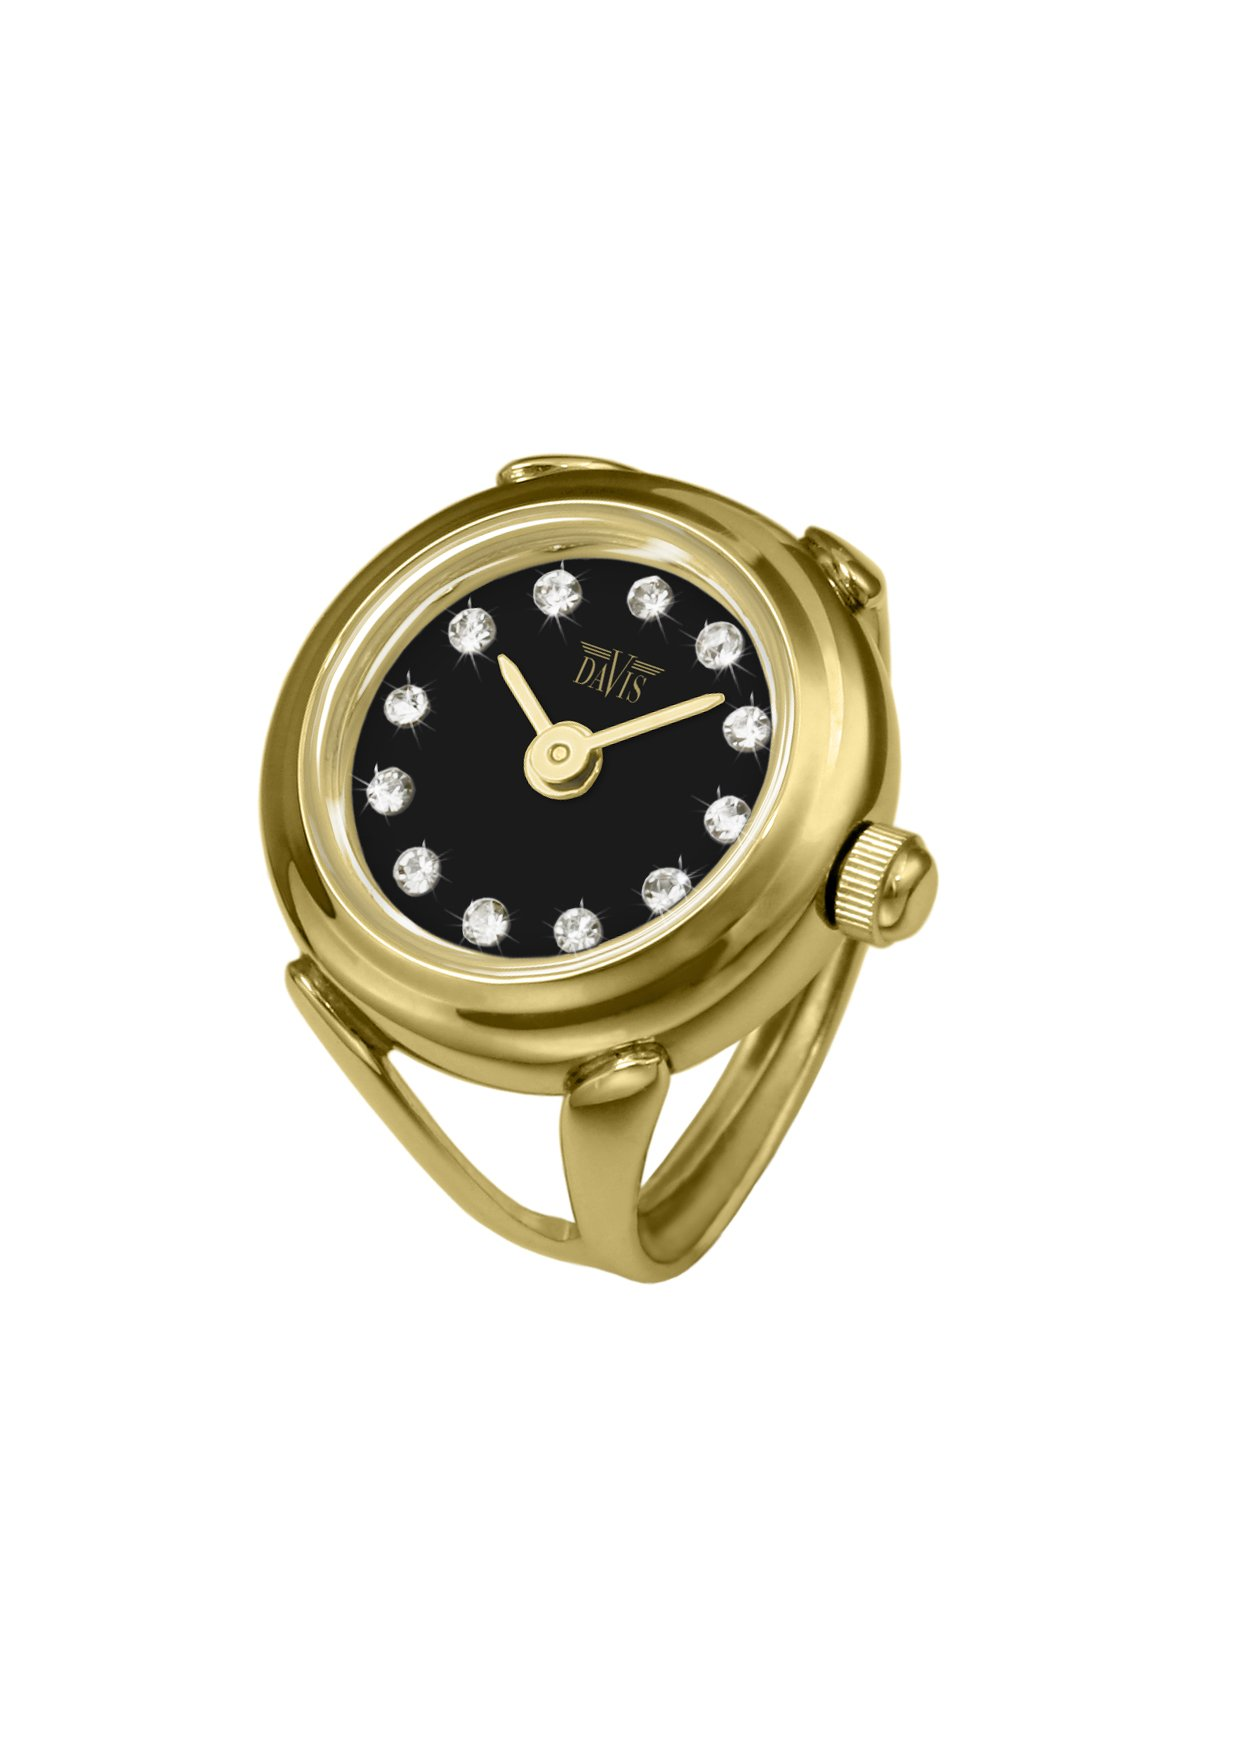 Davis - Womens Finger Ring Watch Swarovski Crystal Rhinestones Sapphire Glass Adjustable (Gold Steel / Black Dial)